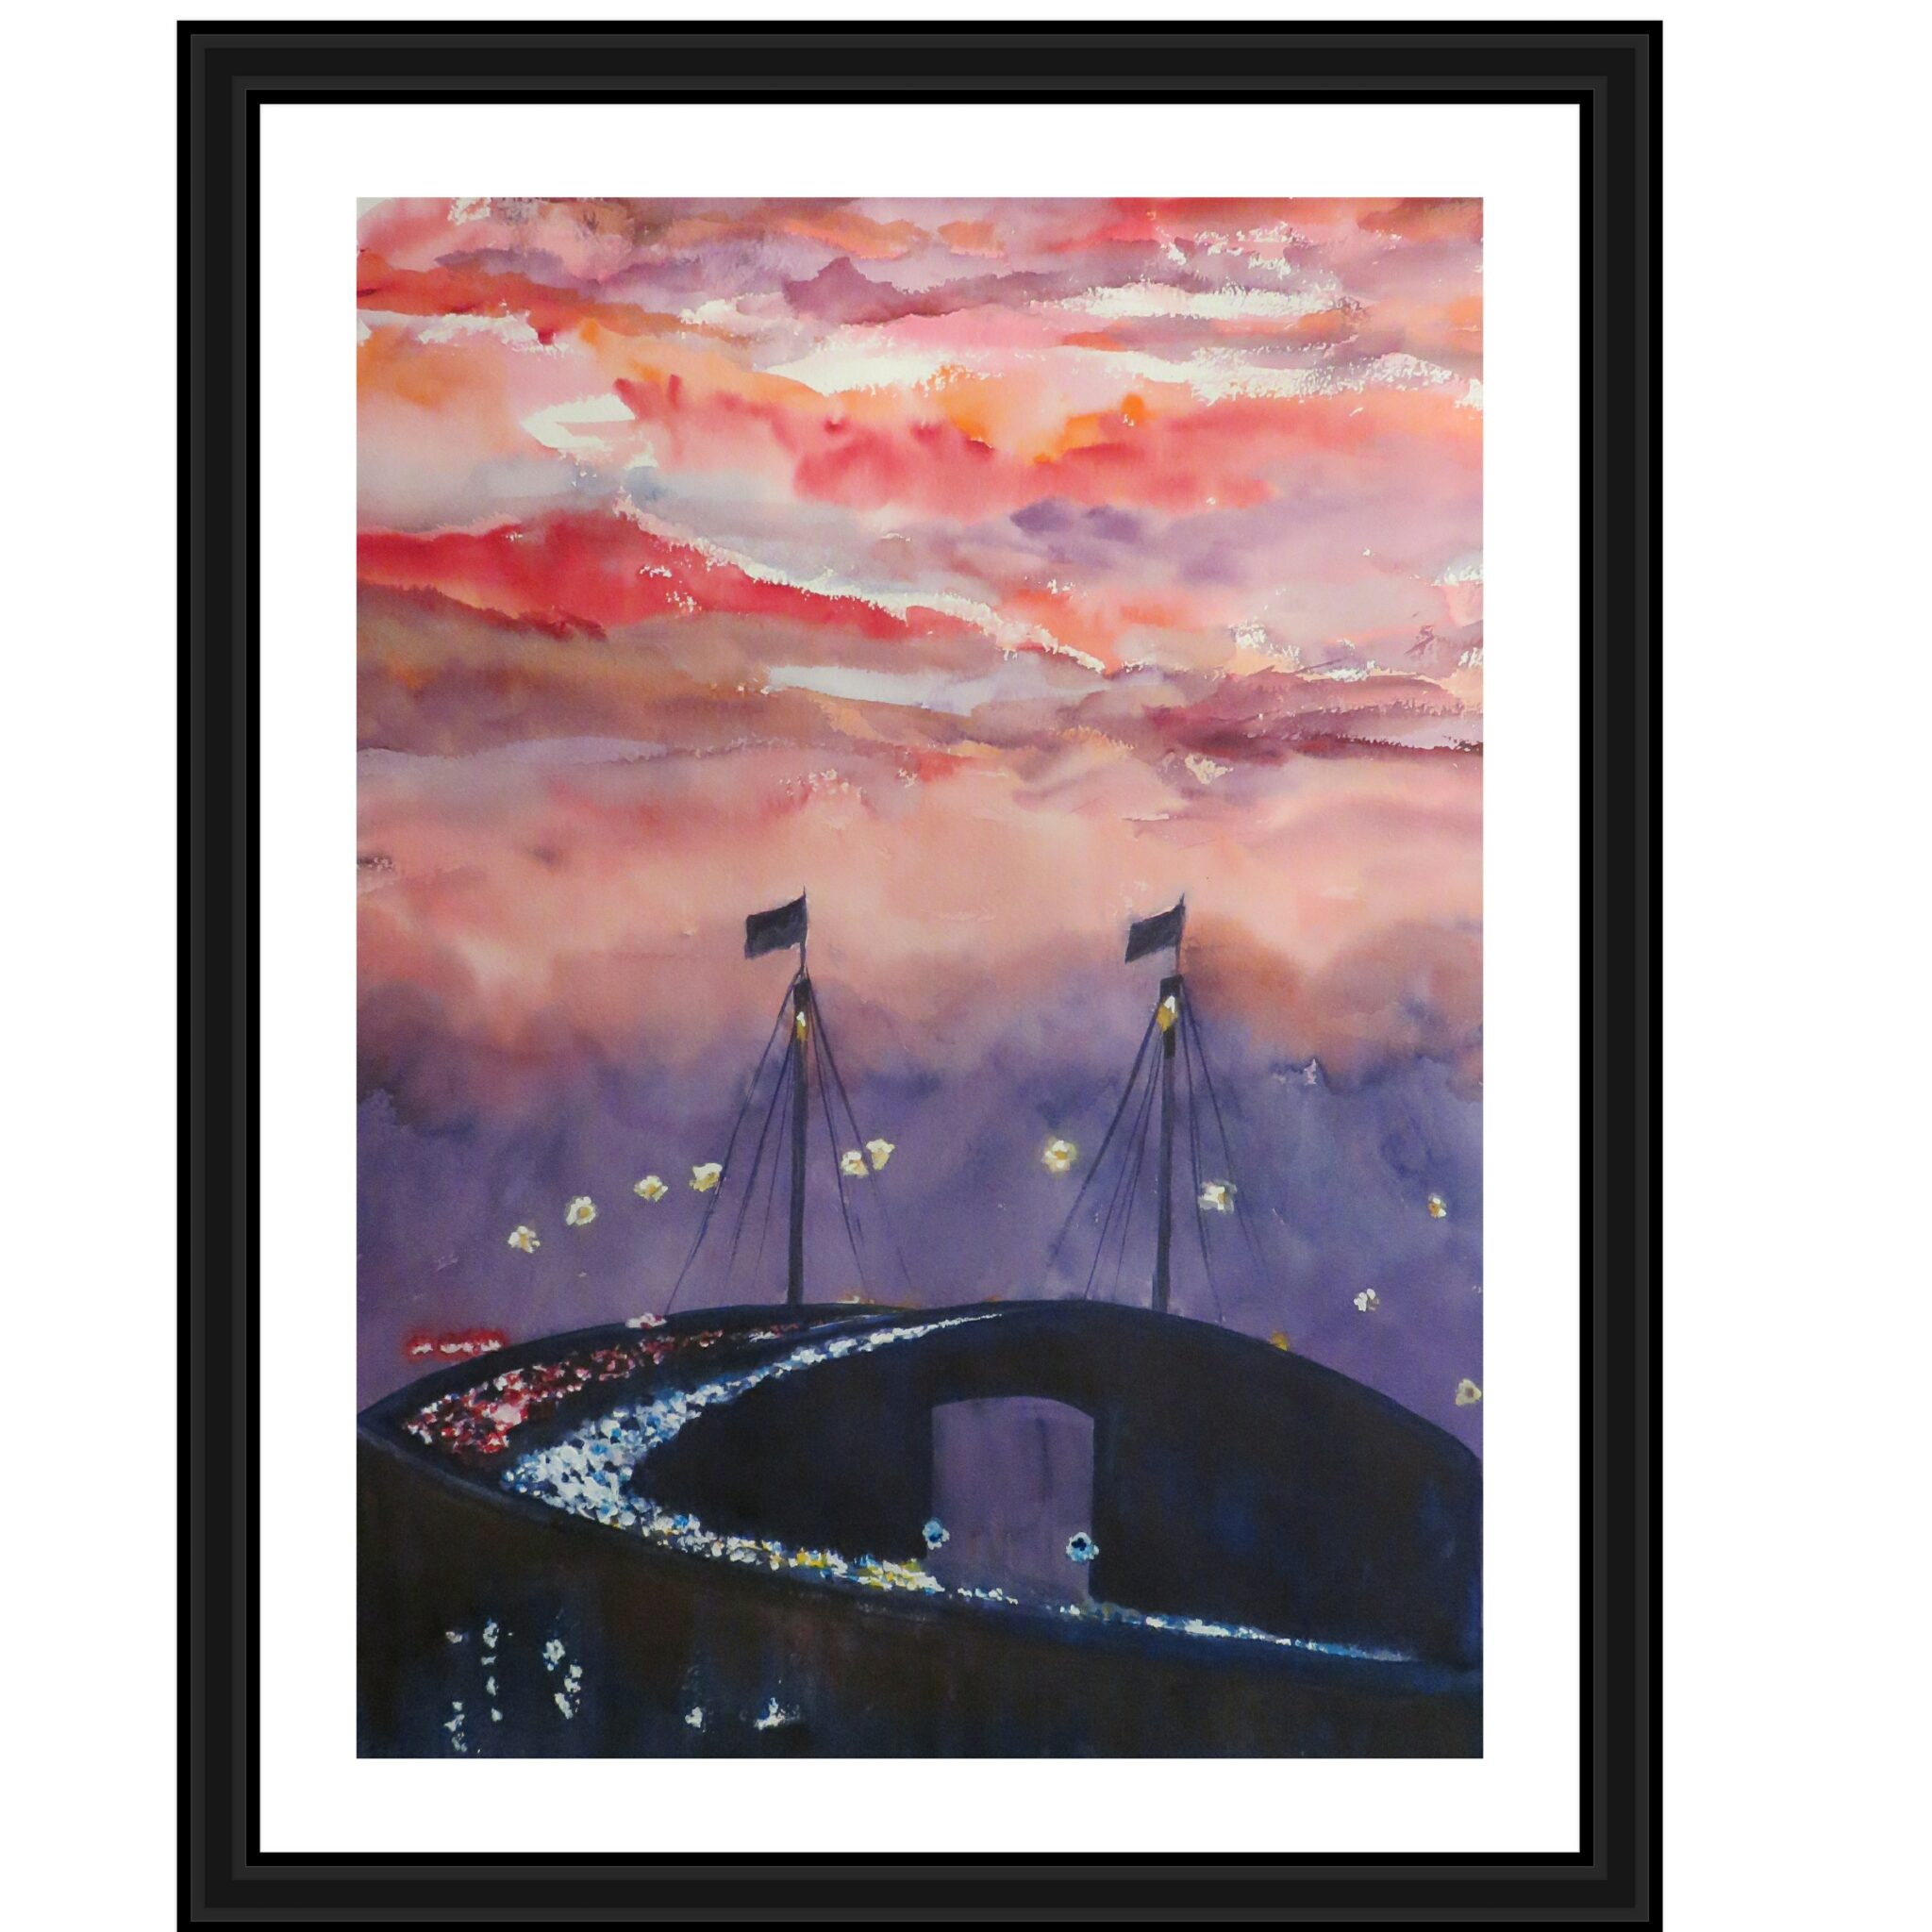 Commuting Home, Framed Original Watercolour By Artist Carin Lavery